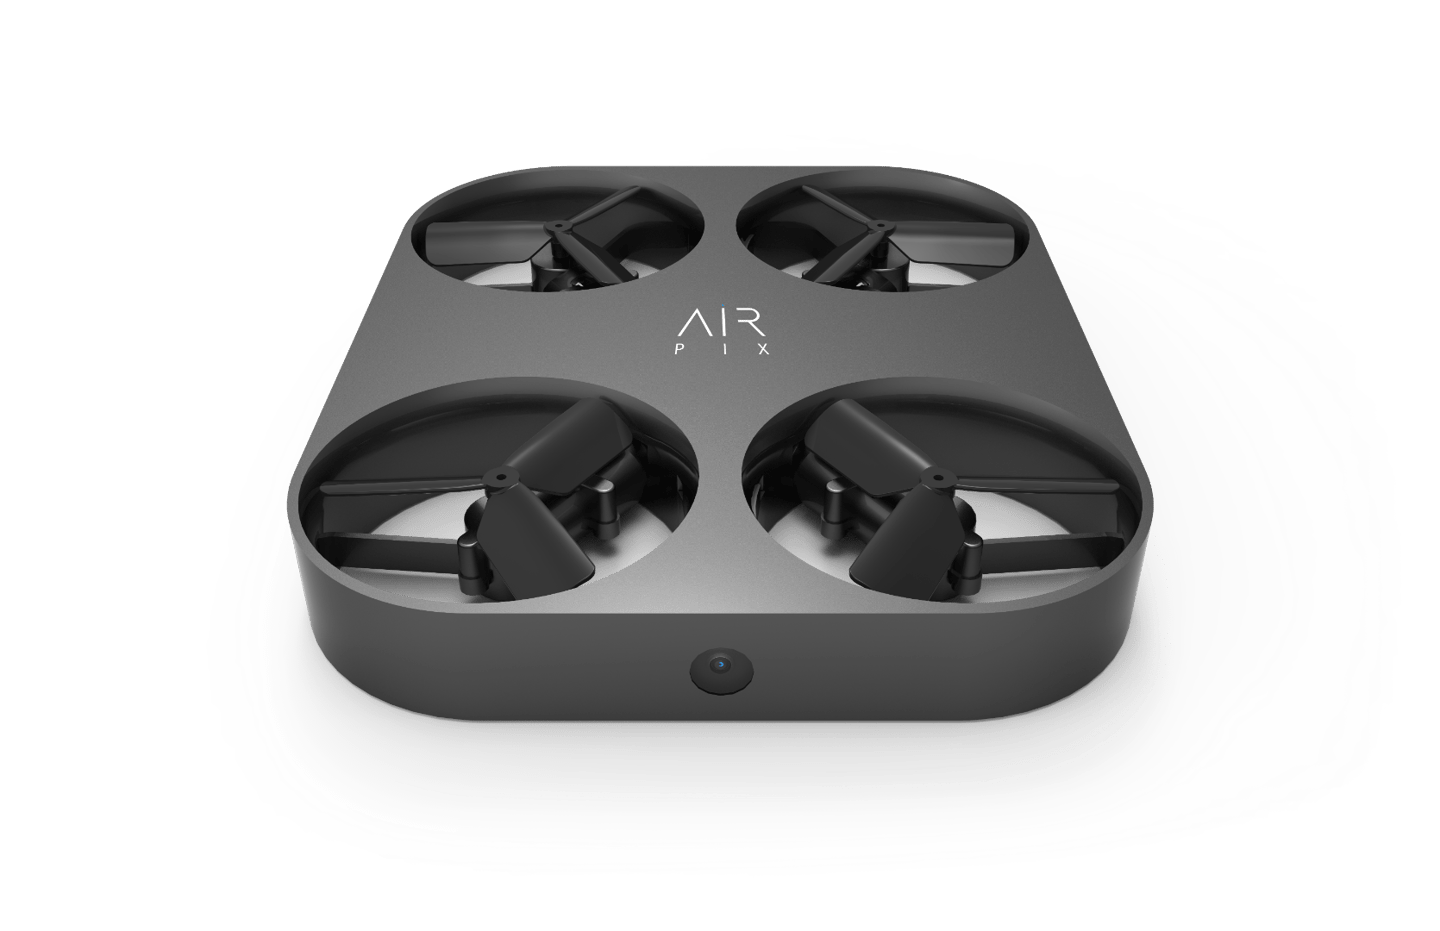 The Air Pix is roughly the same size as previous versions of the AirSelfie